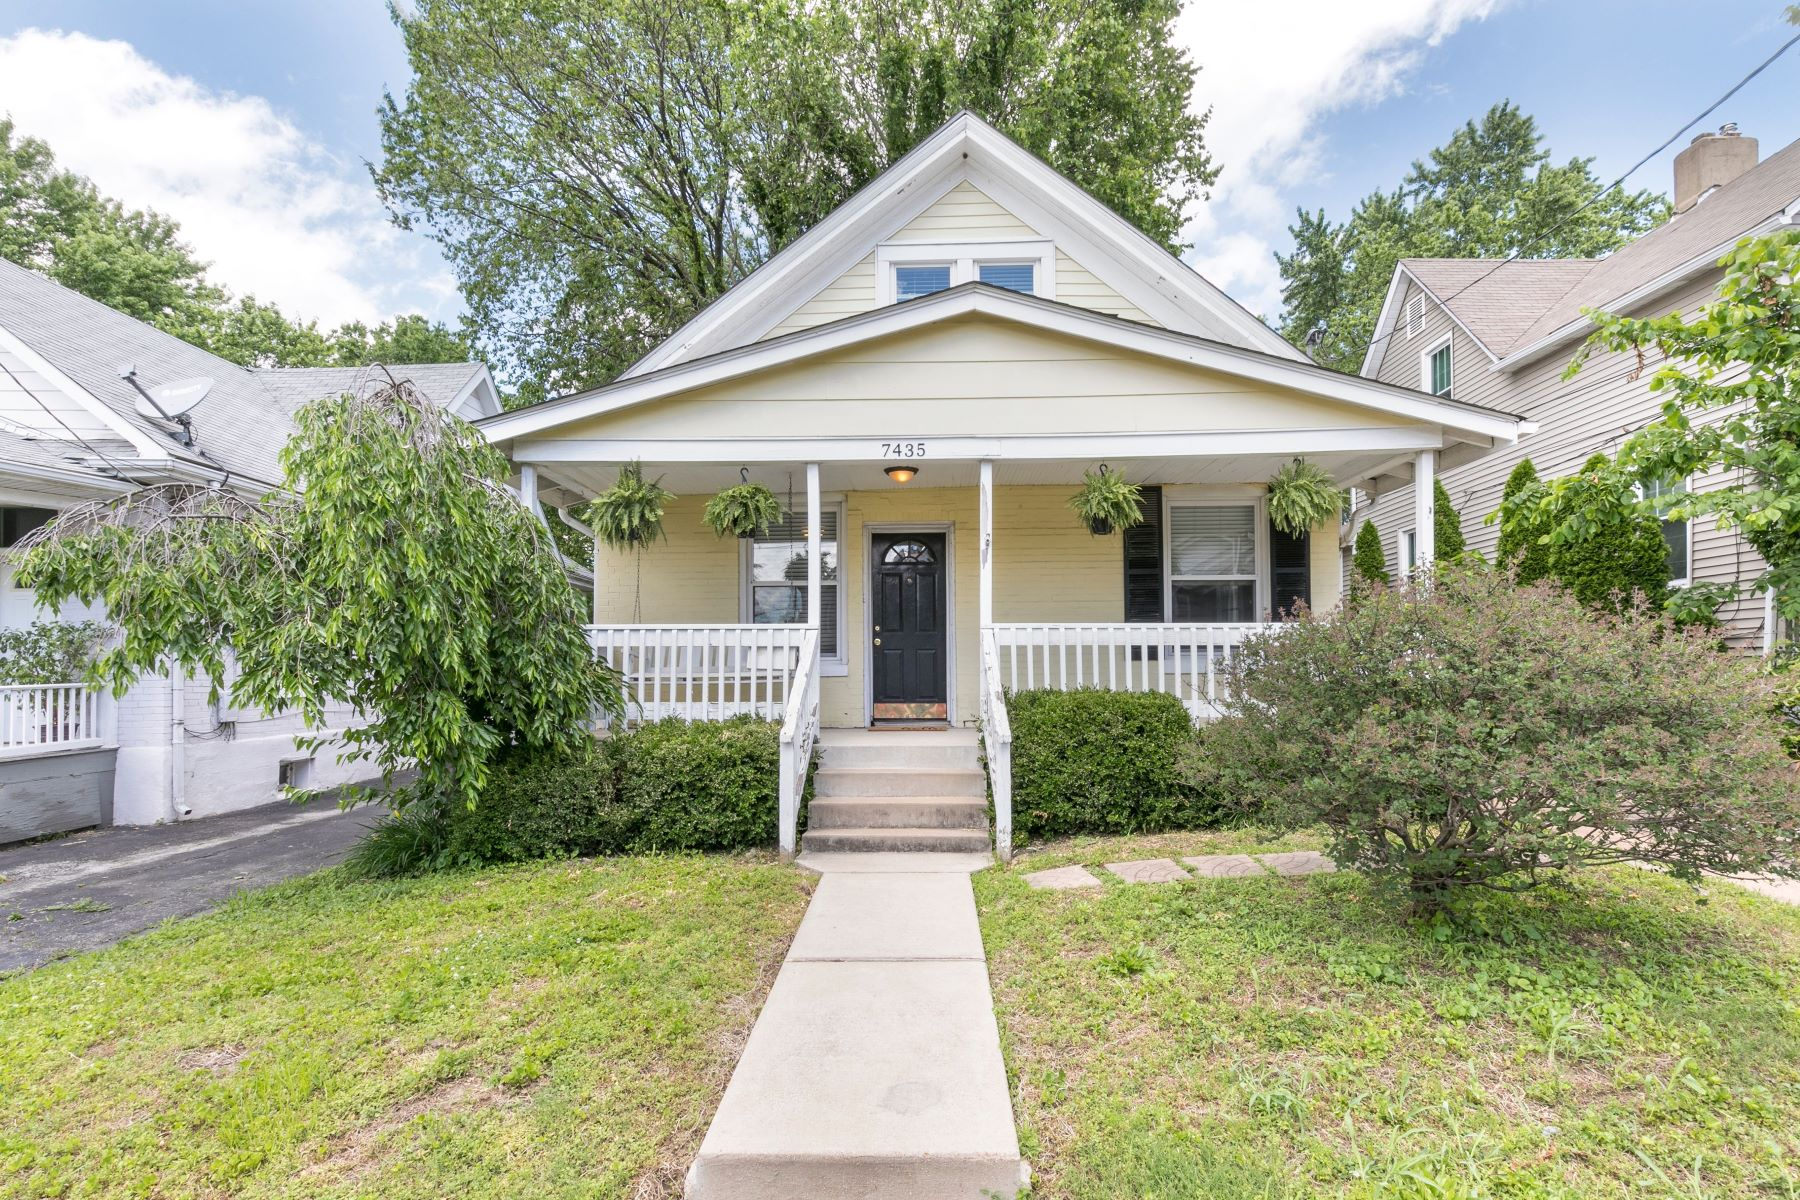 single family homes for Sale at Adorable Bungalow 7435 Lohmeyer Avenue Maplewood, Missouri 63143 United States